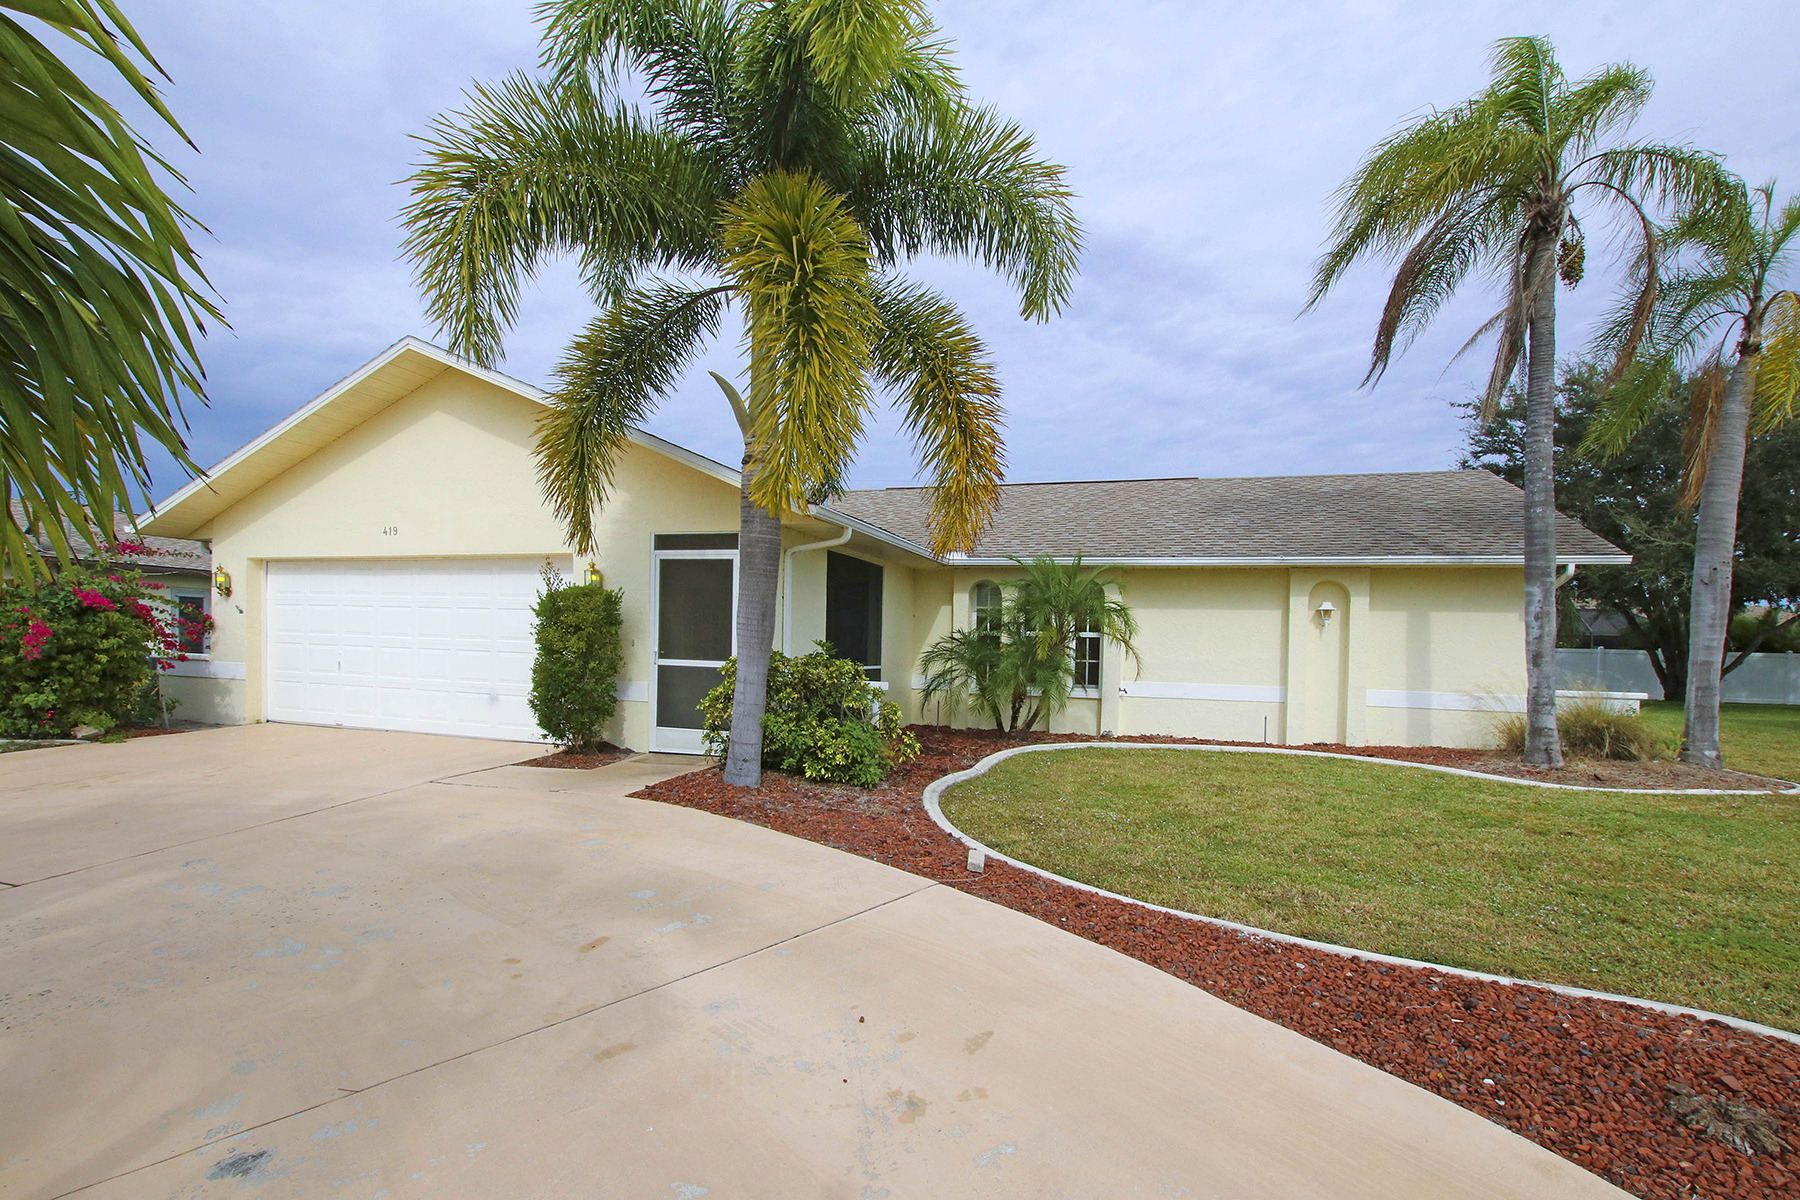 House for Sale at CAPE CORAL 419 SW 38th Cape Coral, Florida 33914 United States